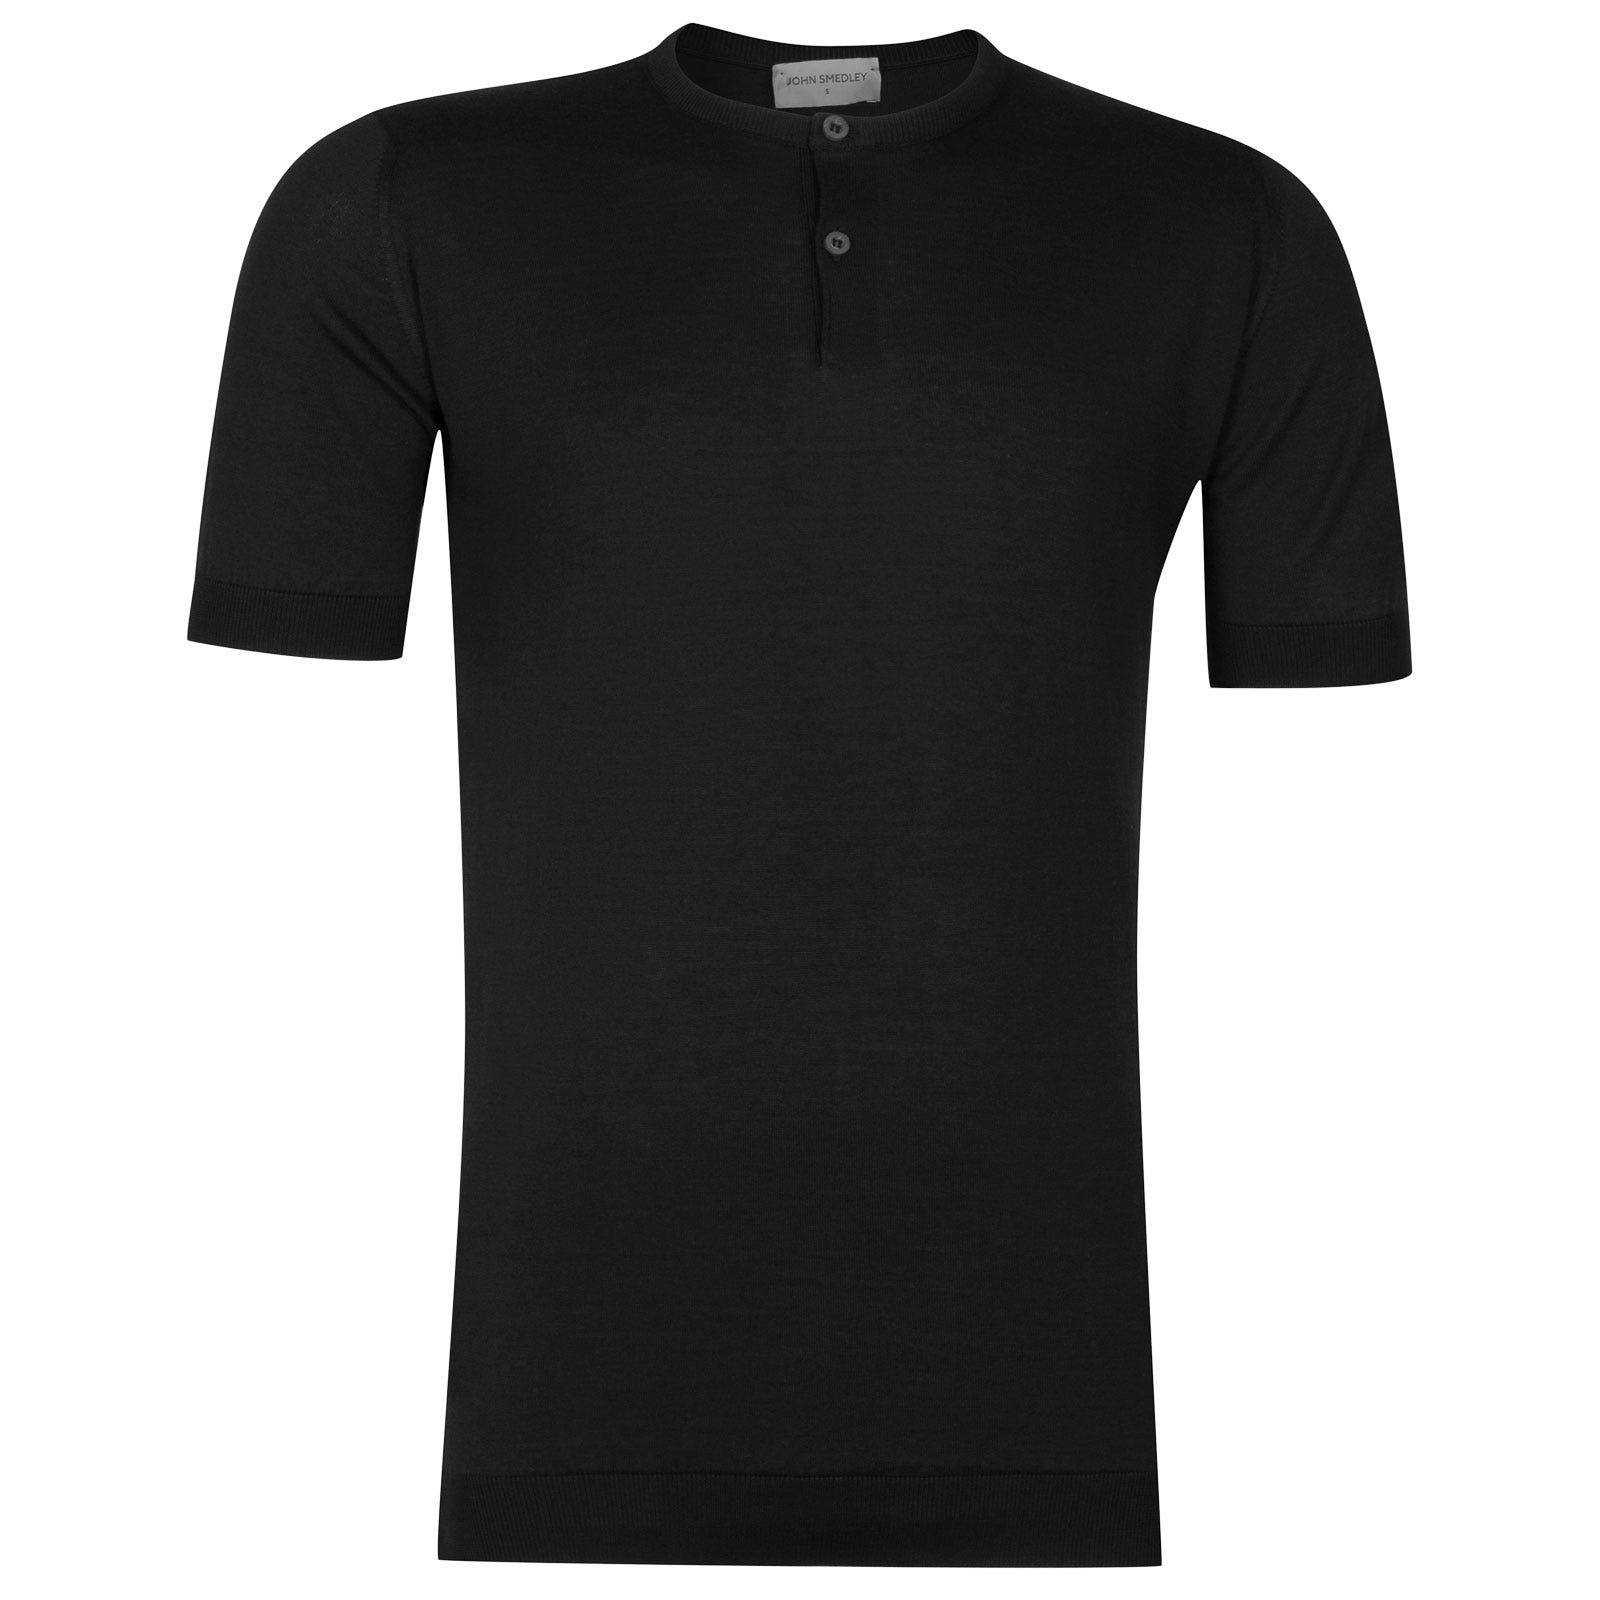 John Smedley Bennett Sea Island Cotton T-shirt in Black-L